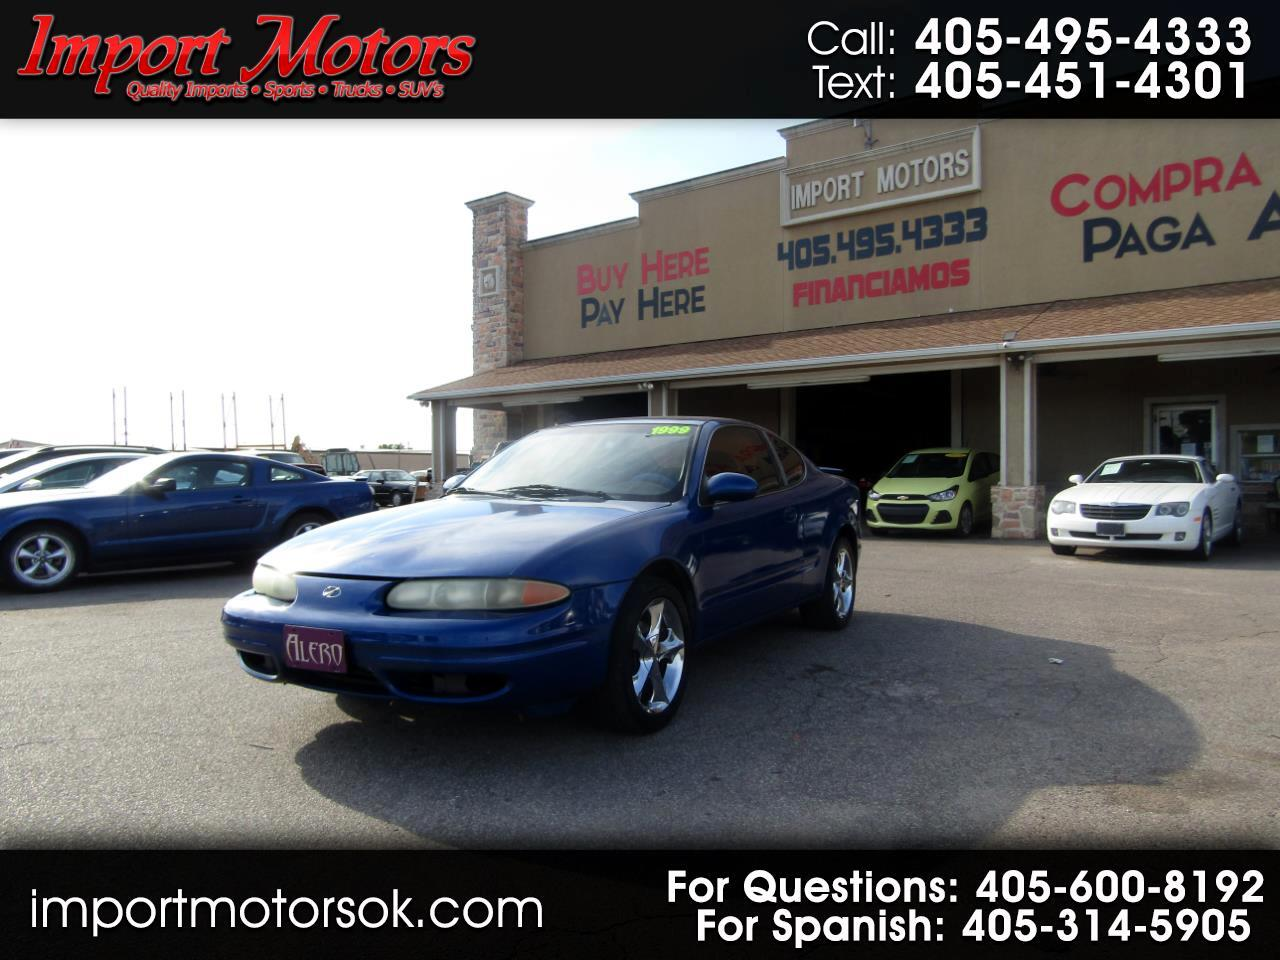 Oldsmobile Alero GL coupe 1999